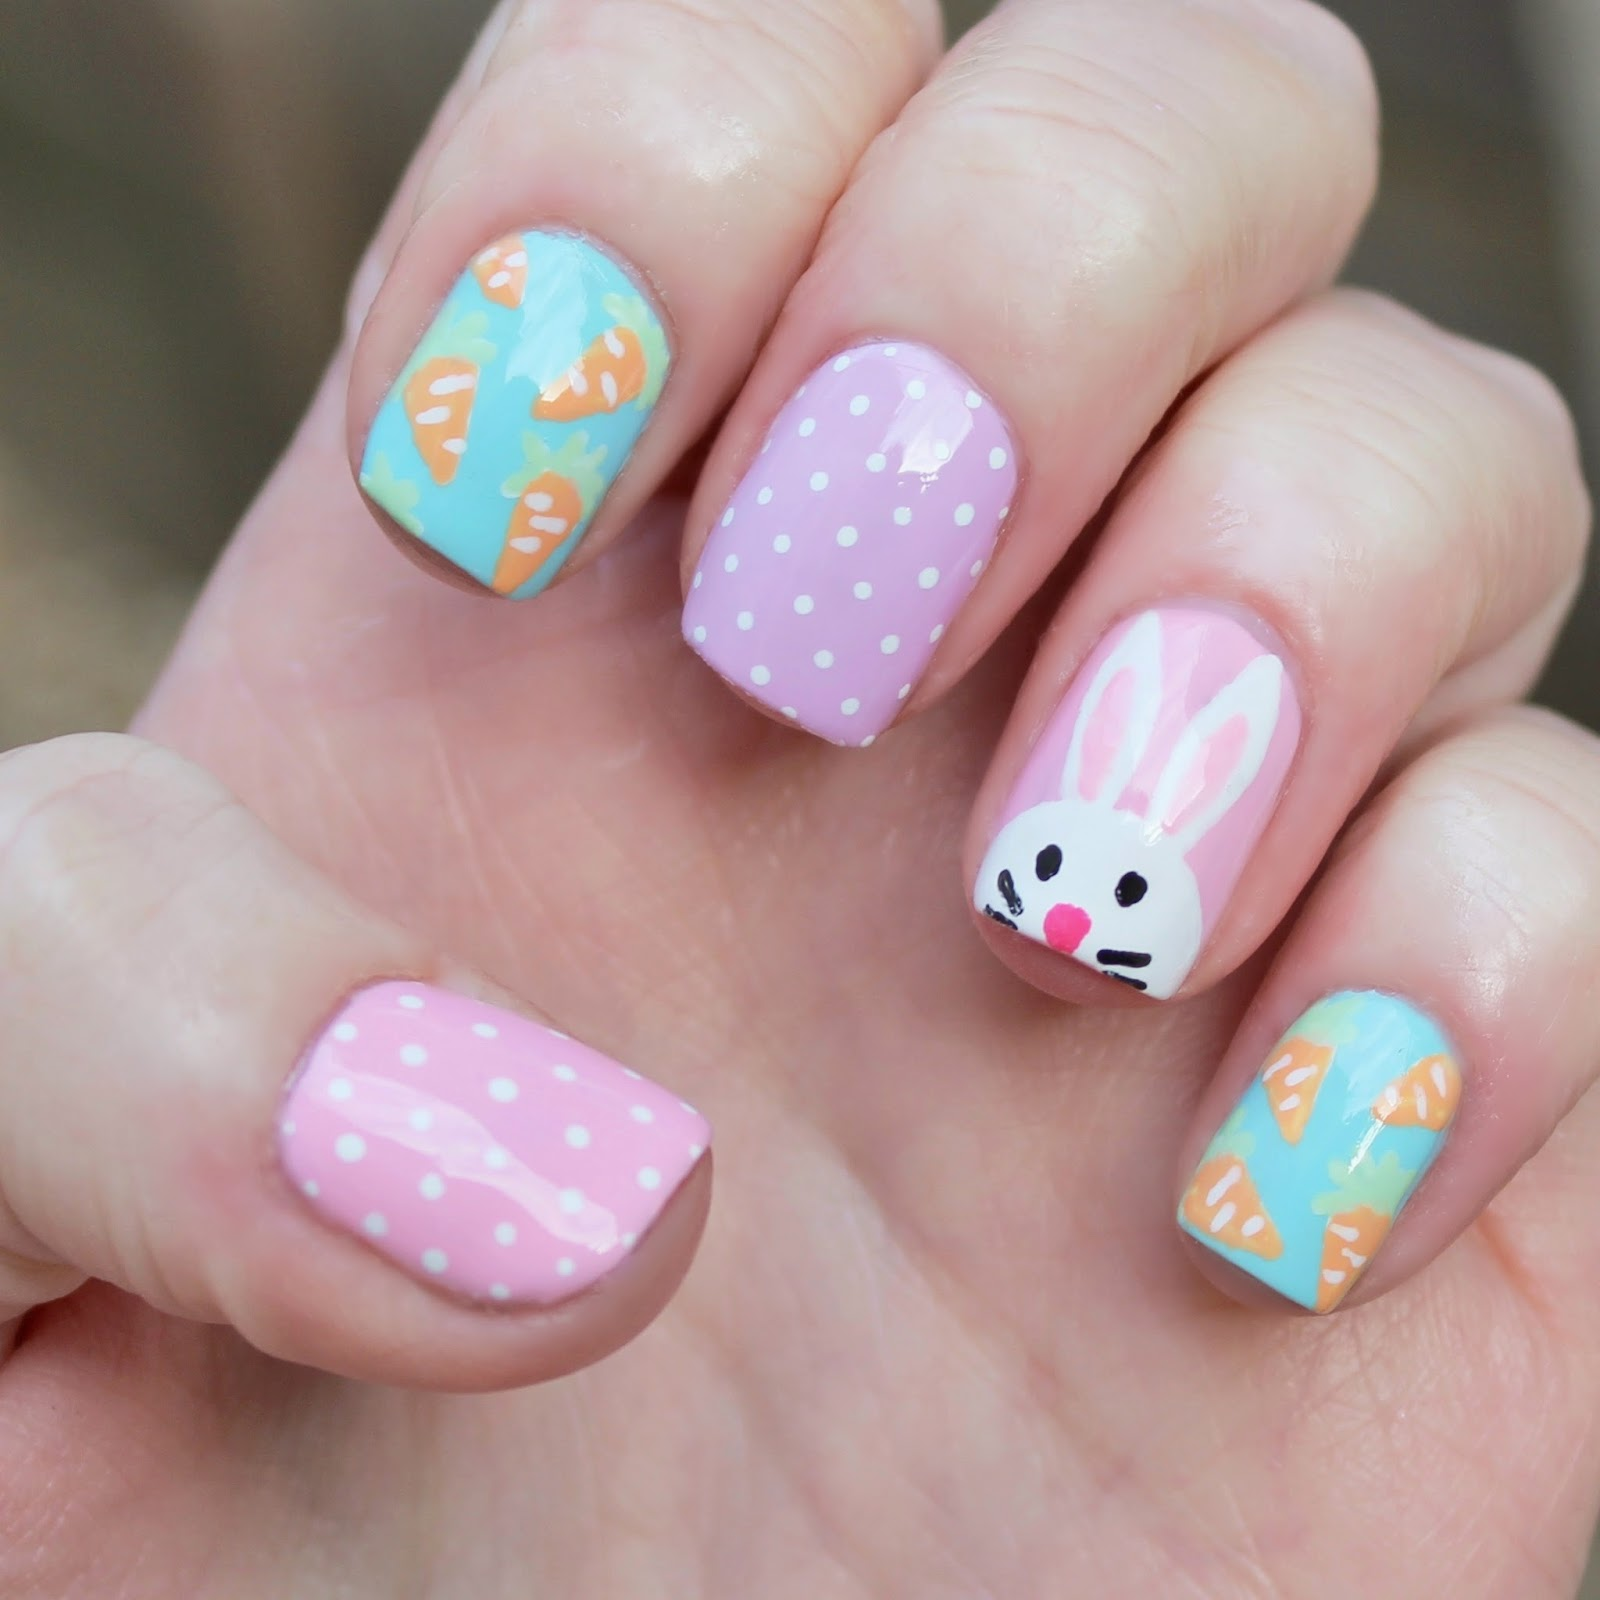 Dahlia nails march 2015 easter bunny for beauty at tesco prinsesfo Choice Image